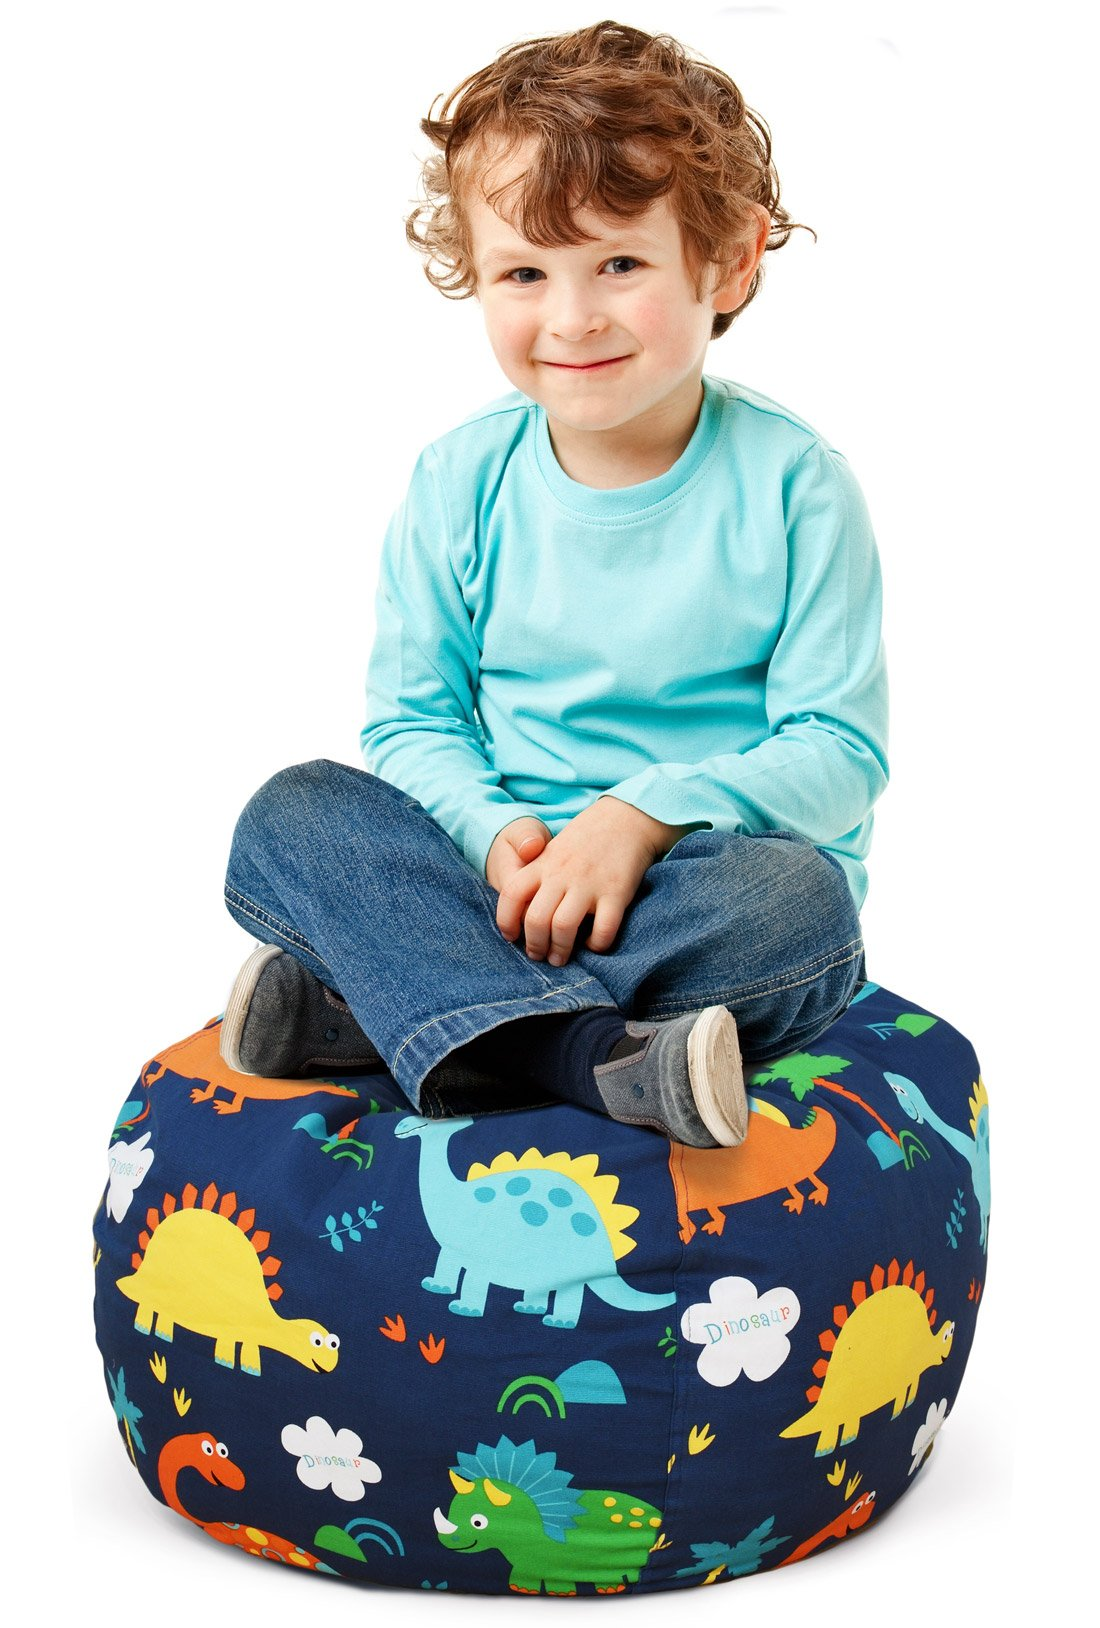 BROLEX 27'' Stuffed Animals Bean Bag Chair Cover-100% Cotton Canvas Kids Toy Storage Zipper Bags Comfy Pouf for Unisex Boys Girls Toddlar, Dinosaur Print